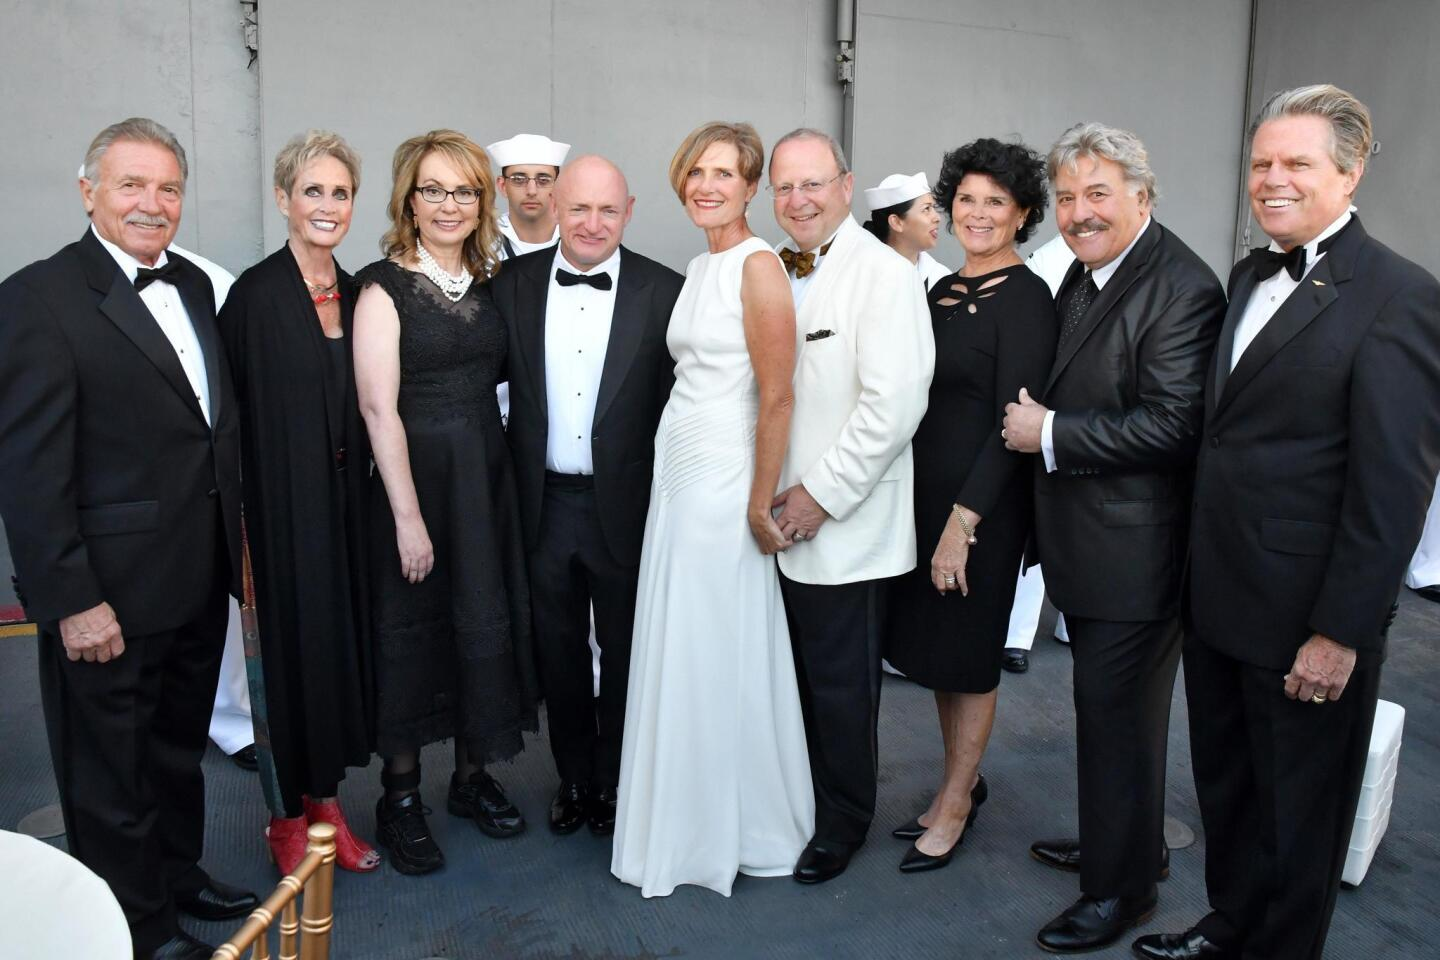 Phil and Connie Conard (she's event chair), Hon. Gabrielle Giffords and Mark Kelly (American Patriot Award honorees), Ann and Ben Haddad (honorary chairs), Nora McLaughlin, Tony Orlando, Mac McLaughlin (RADM, USN, Ret.; USS Midway President/CEO)